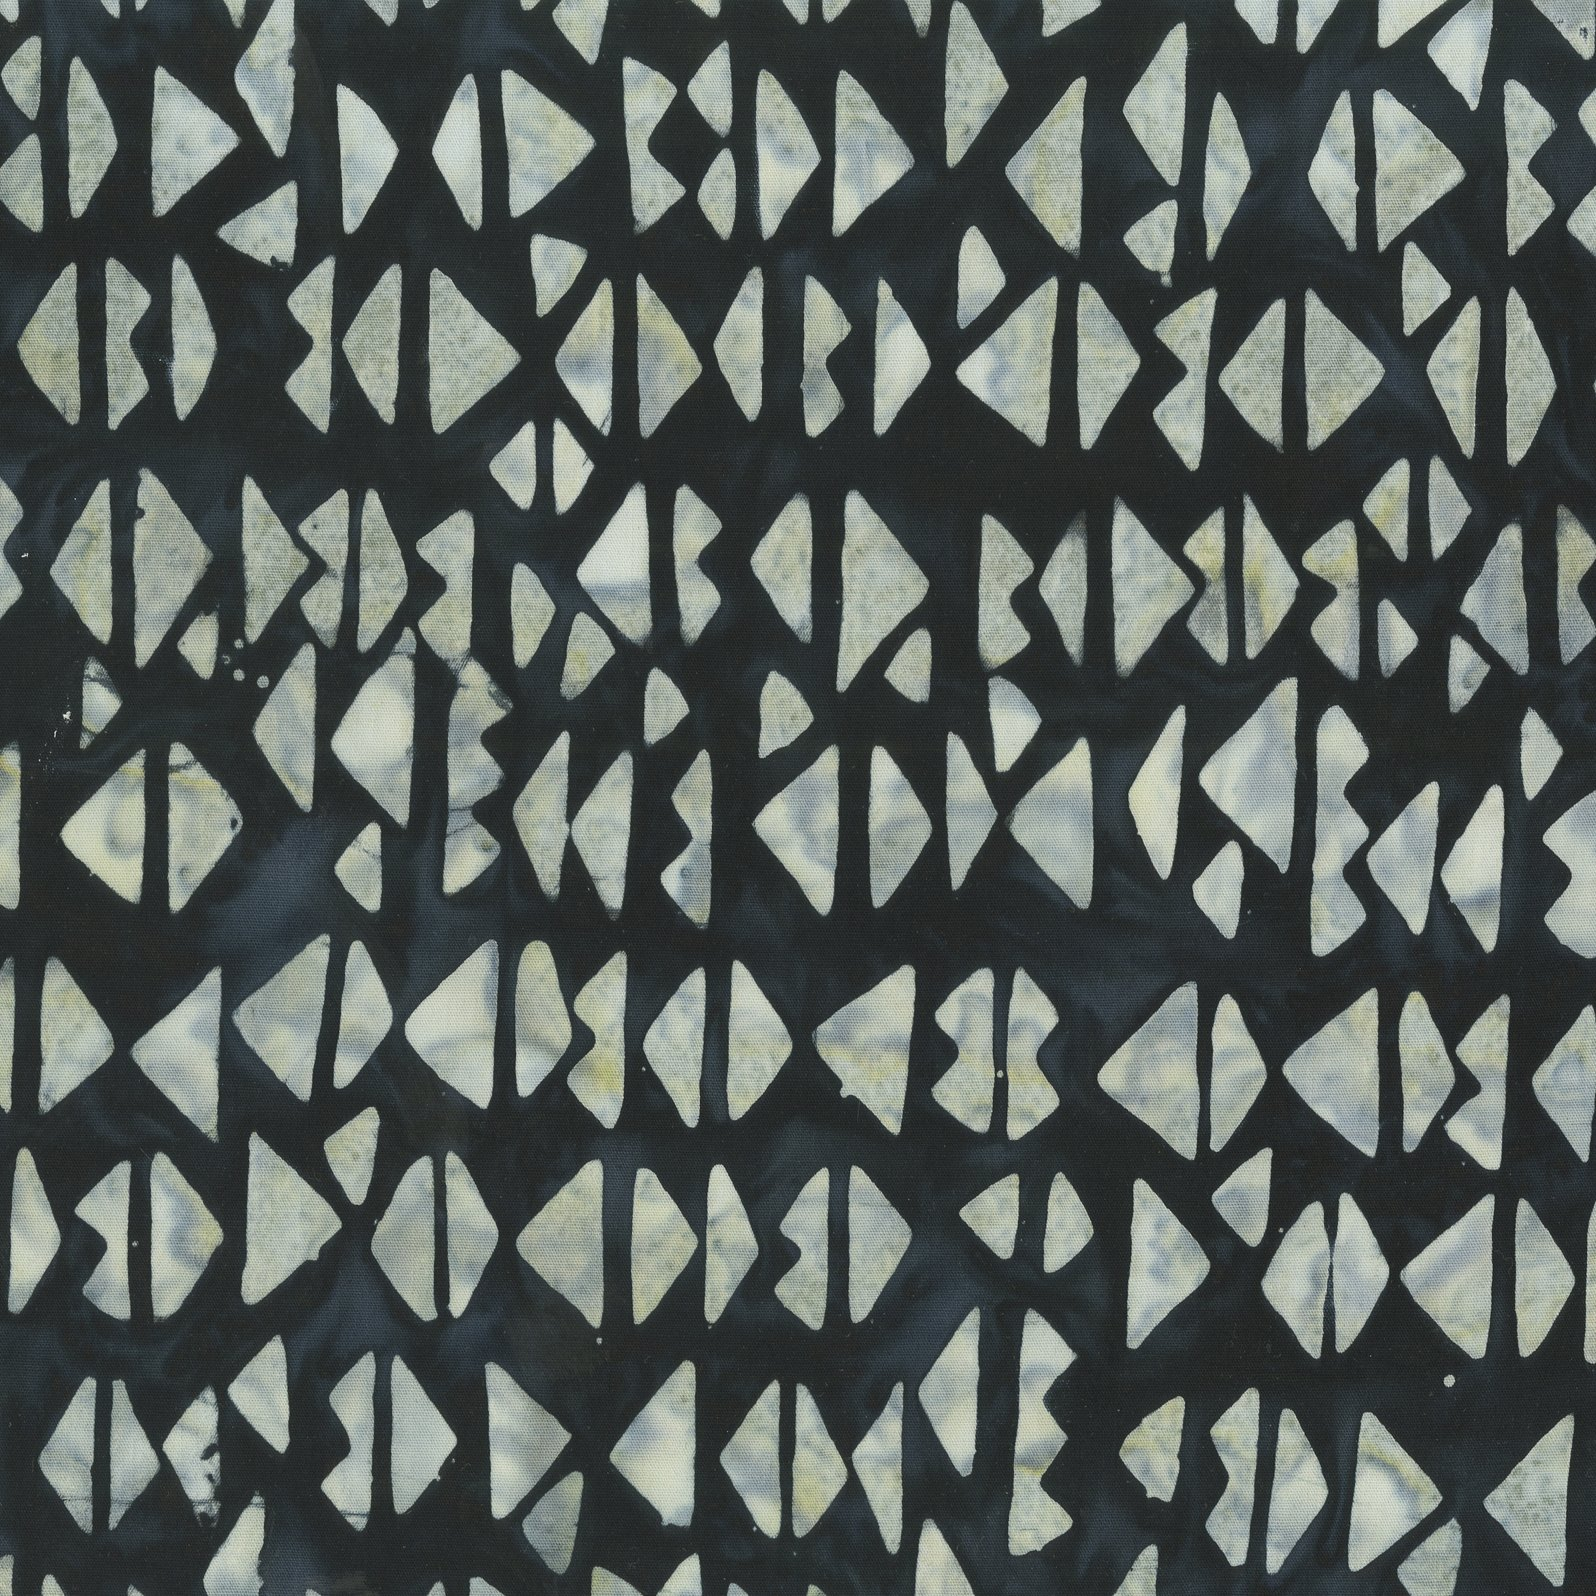 706Q-4 Island Home by Natalie Barnes of Beyond the Reef for Anthology Fabrics